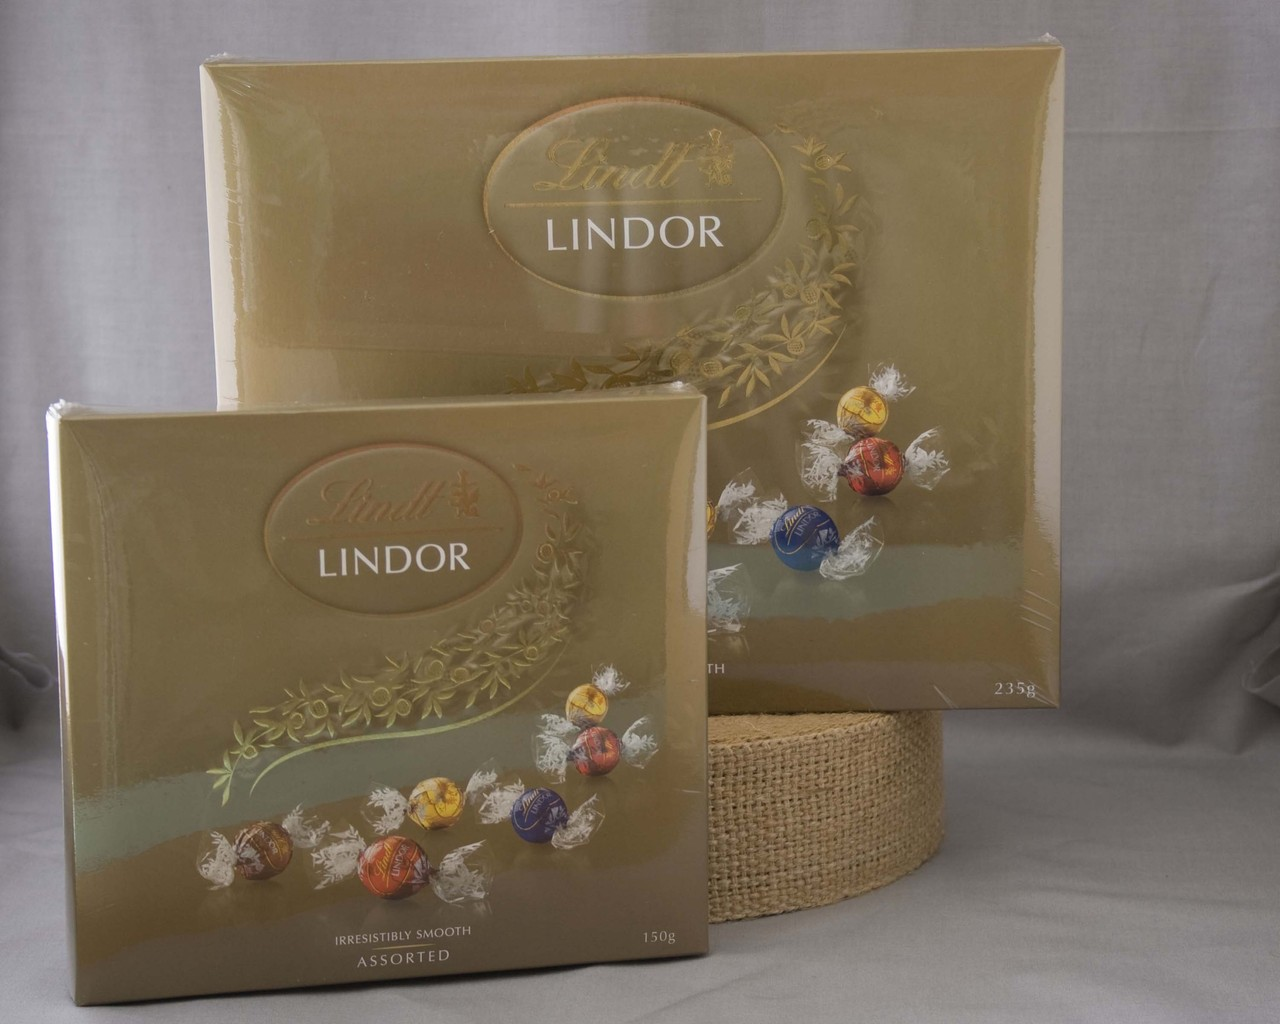 Lindt Lindor - Assorted Chocolates 235g